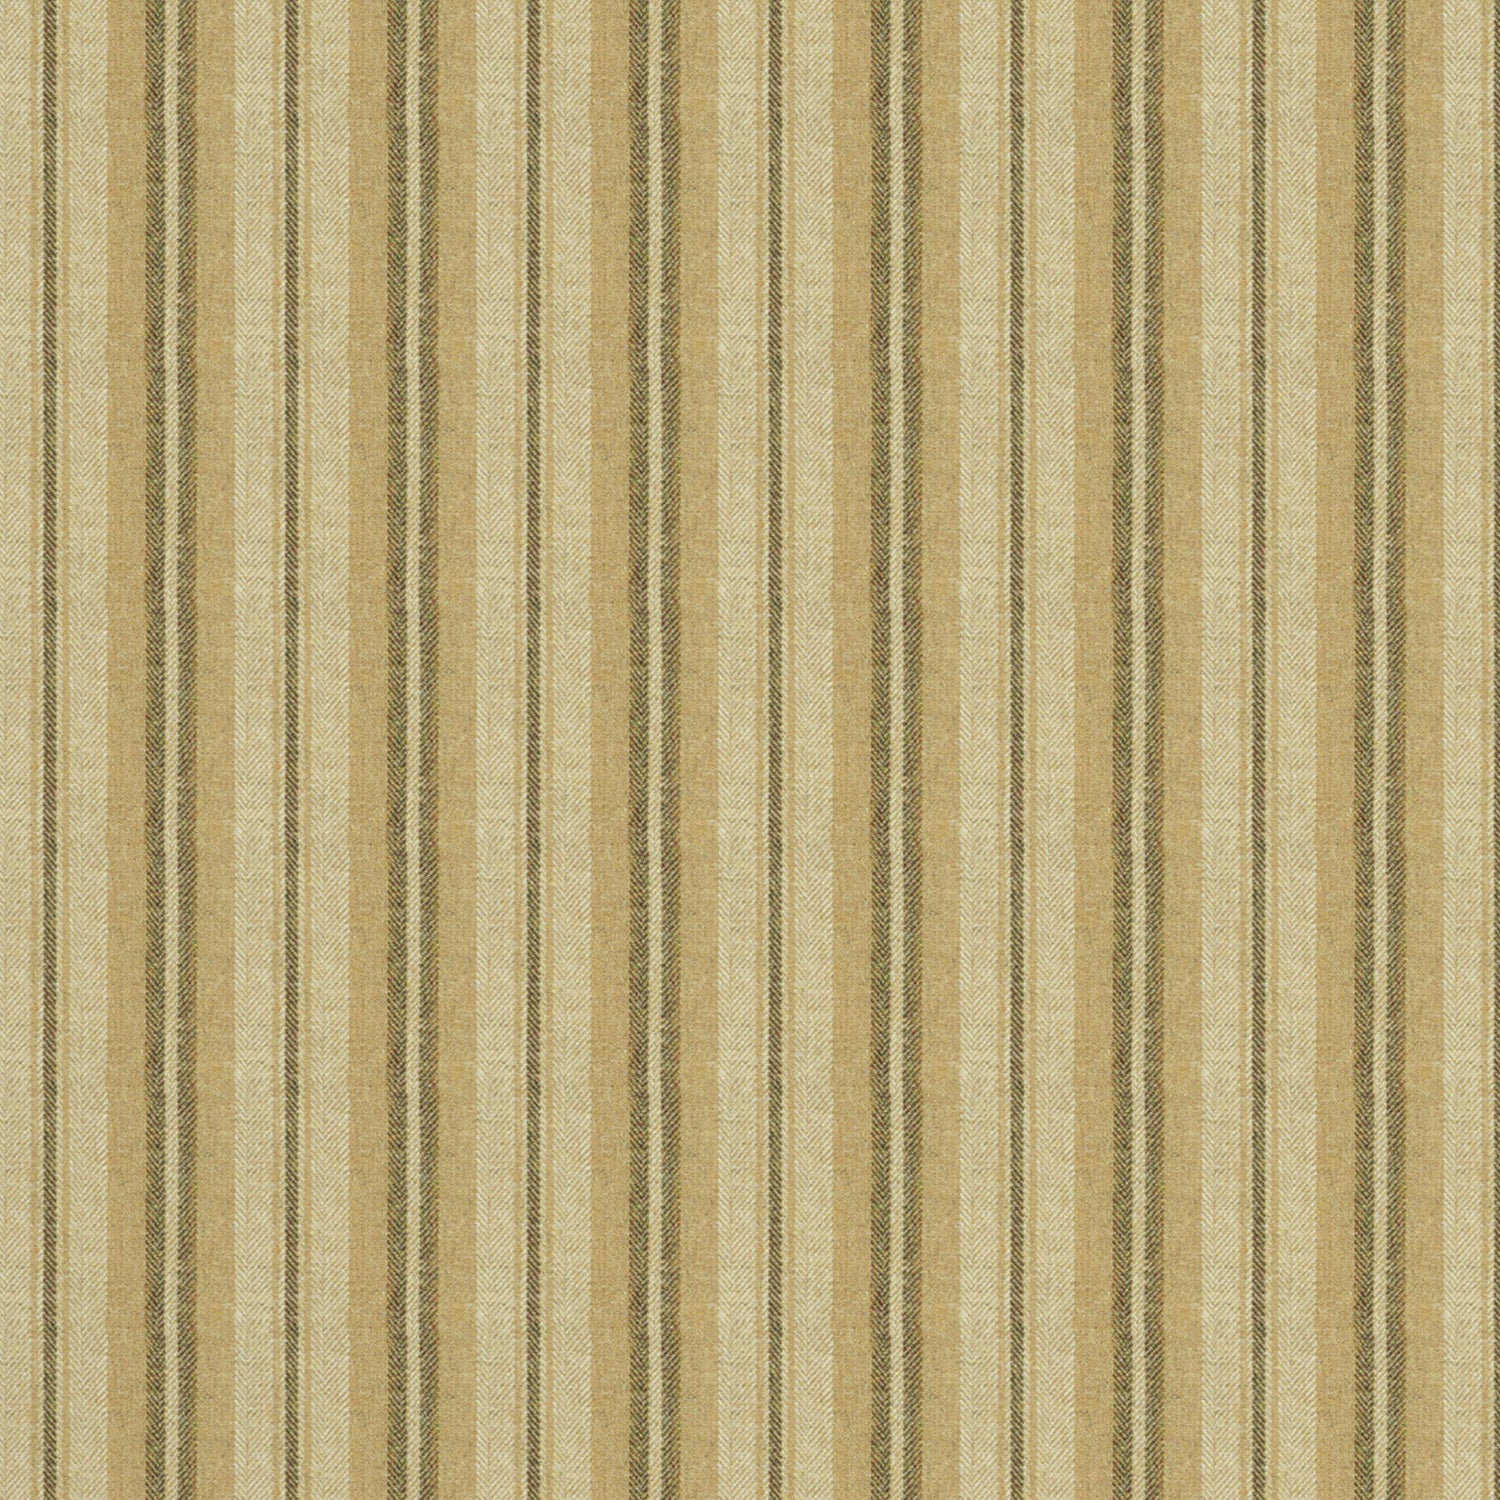 Fabric swatch of a luxury Scottish cream and beige wool striped fabric suitable for curtains and upholstery